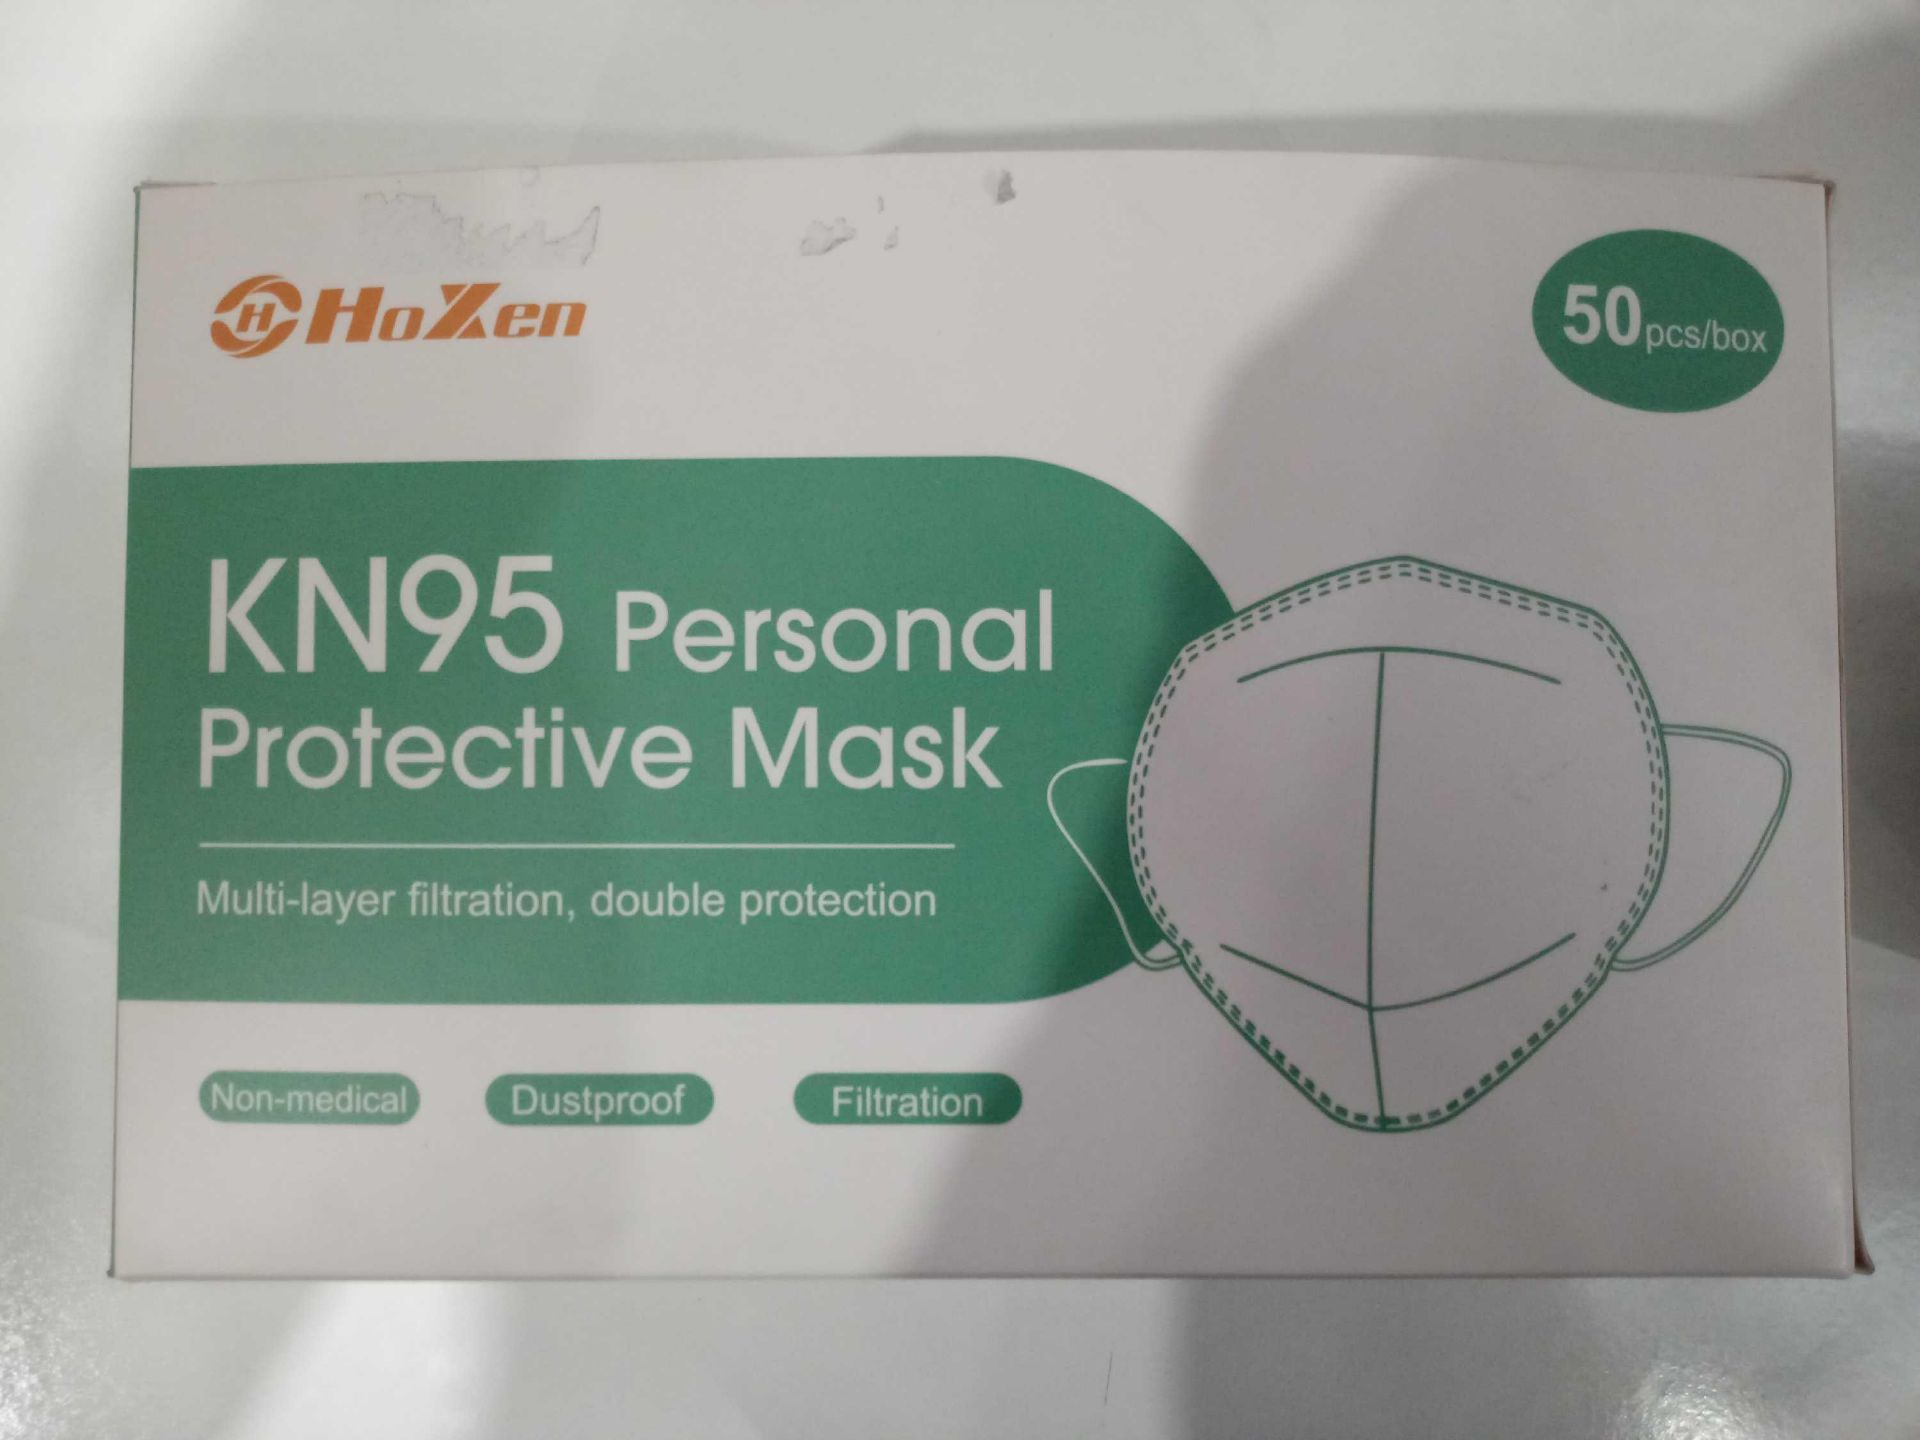 Lot 372 - Box of KN95 personal protective masks